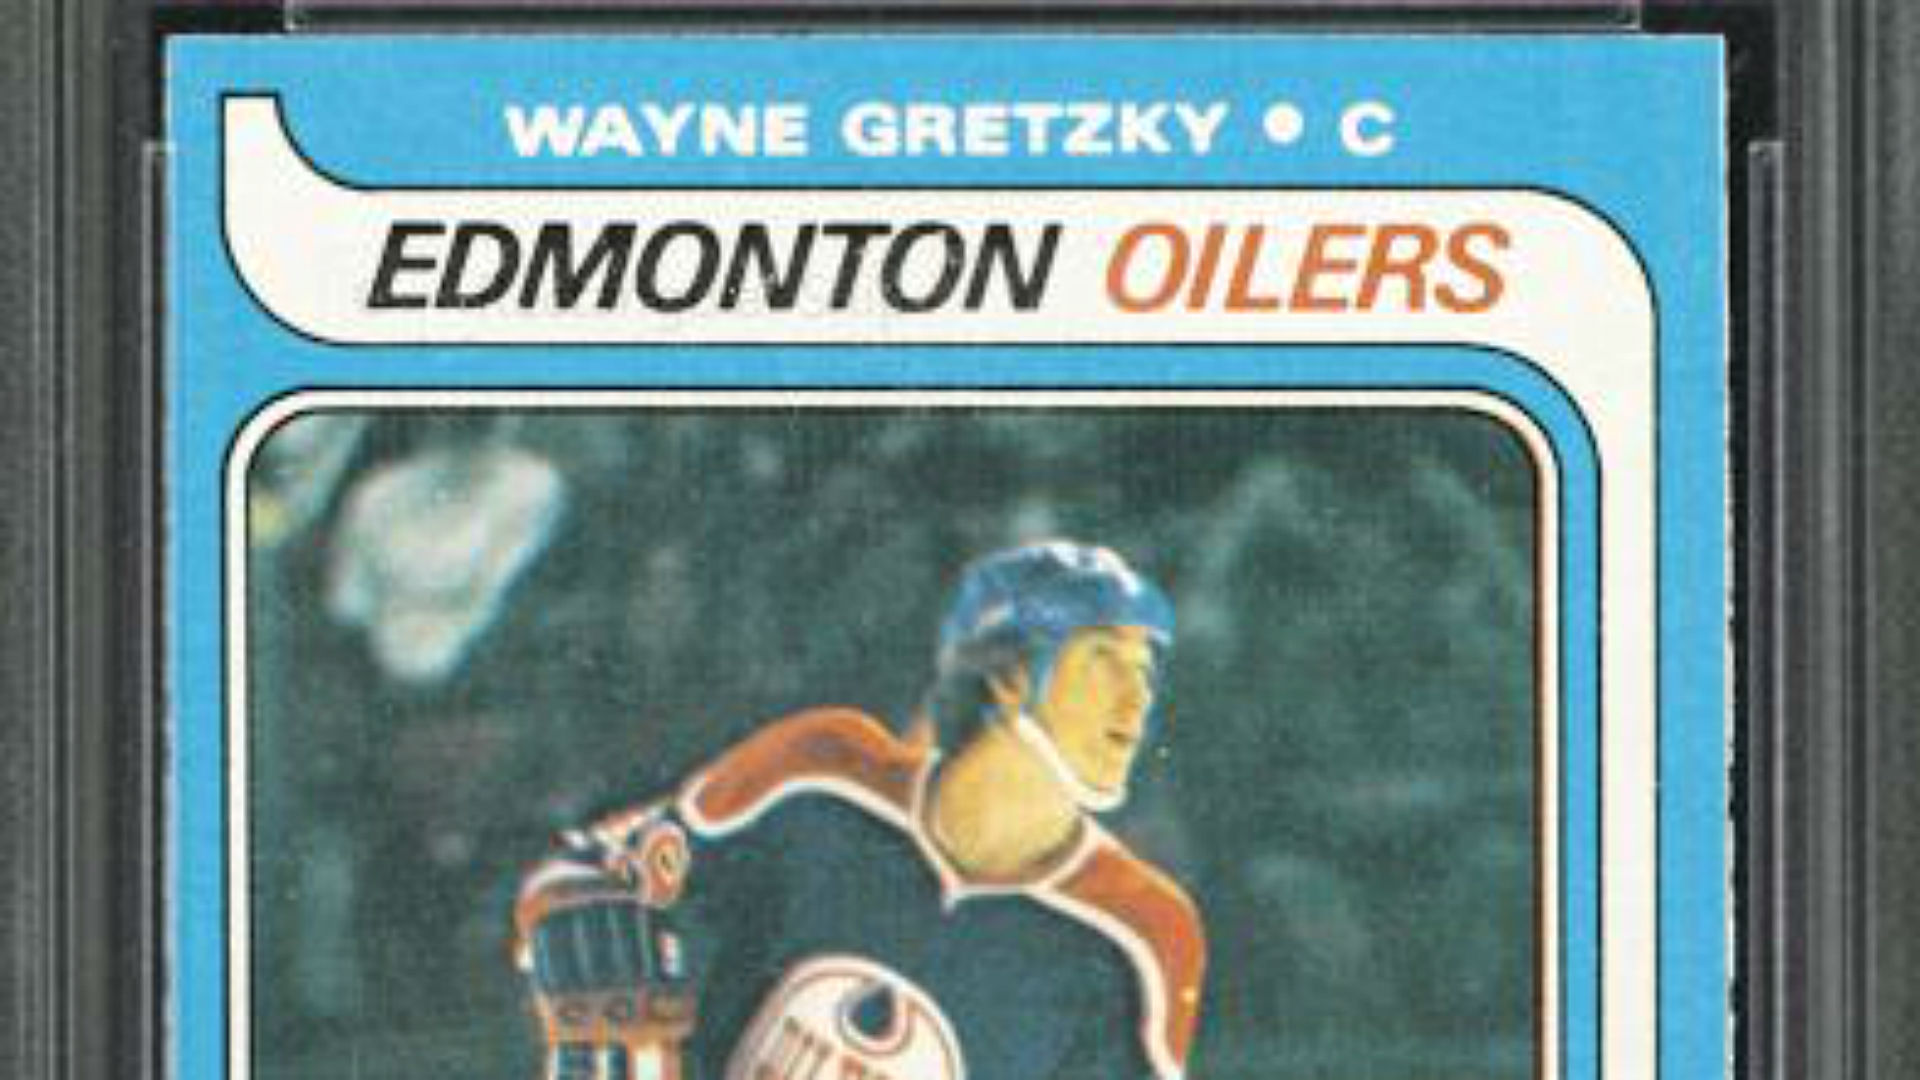 Wayne Gretzky Rookie Card Imperfections And All Sells For